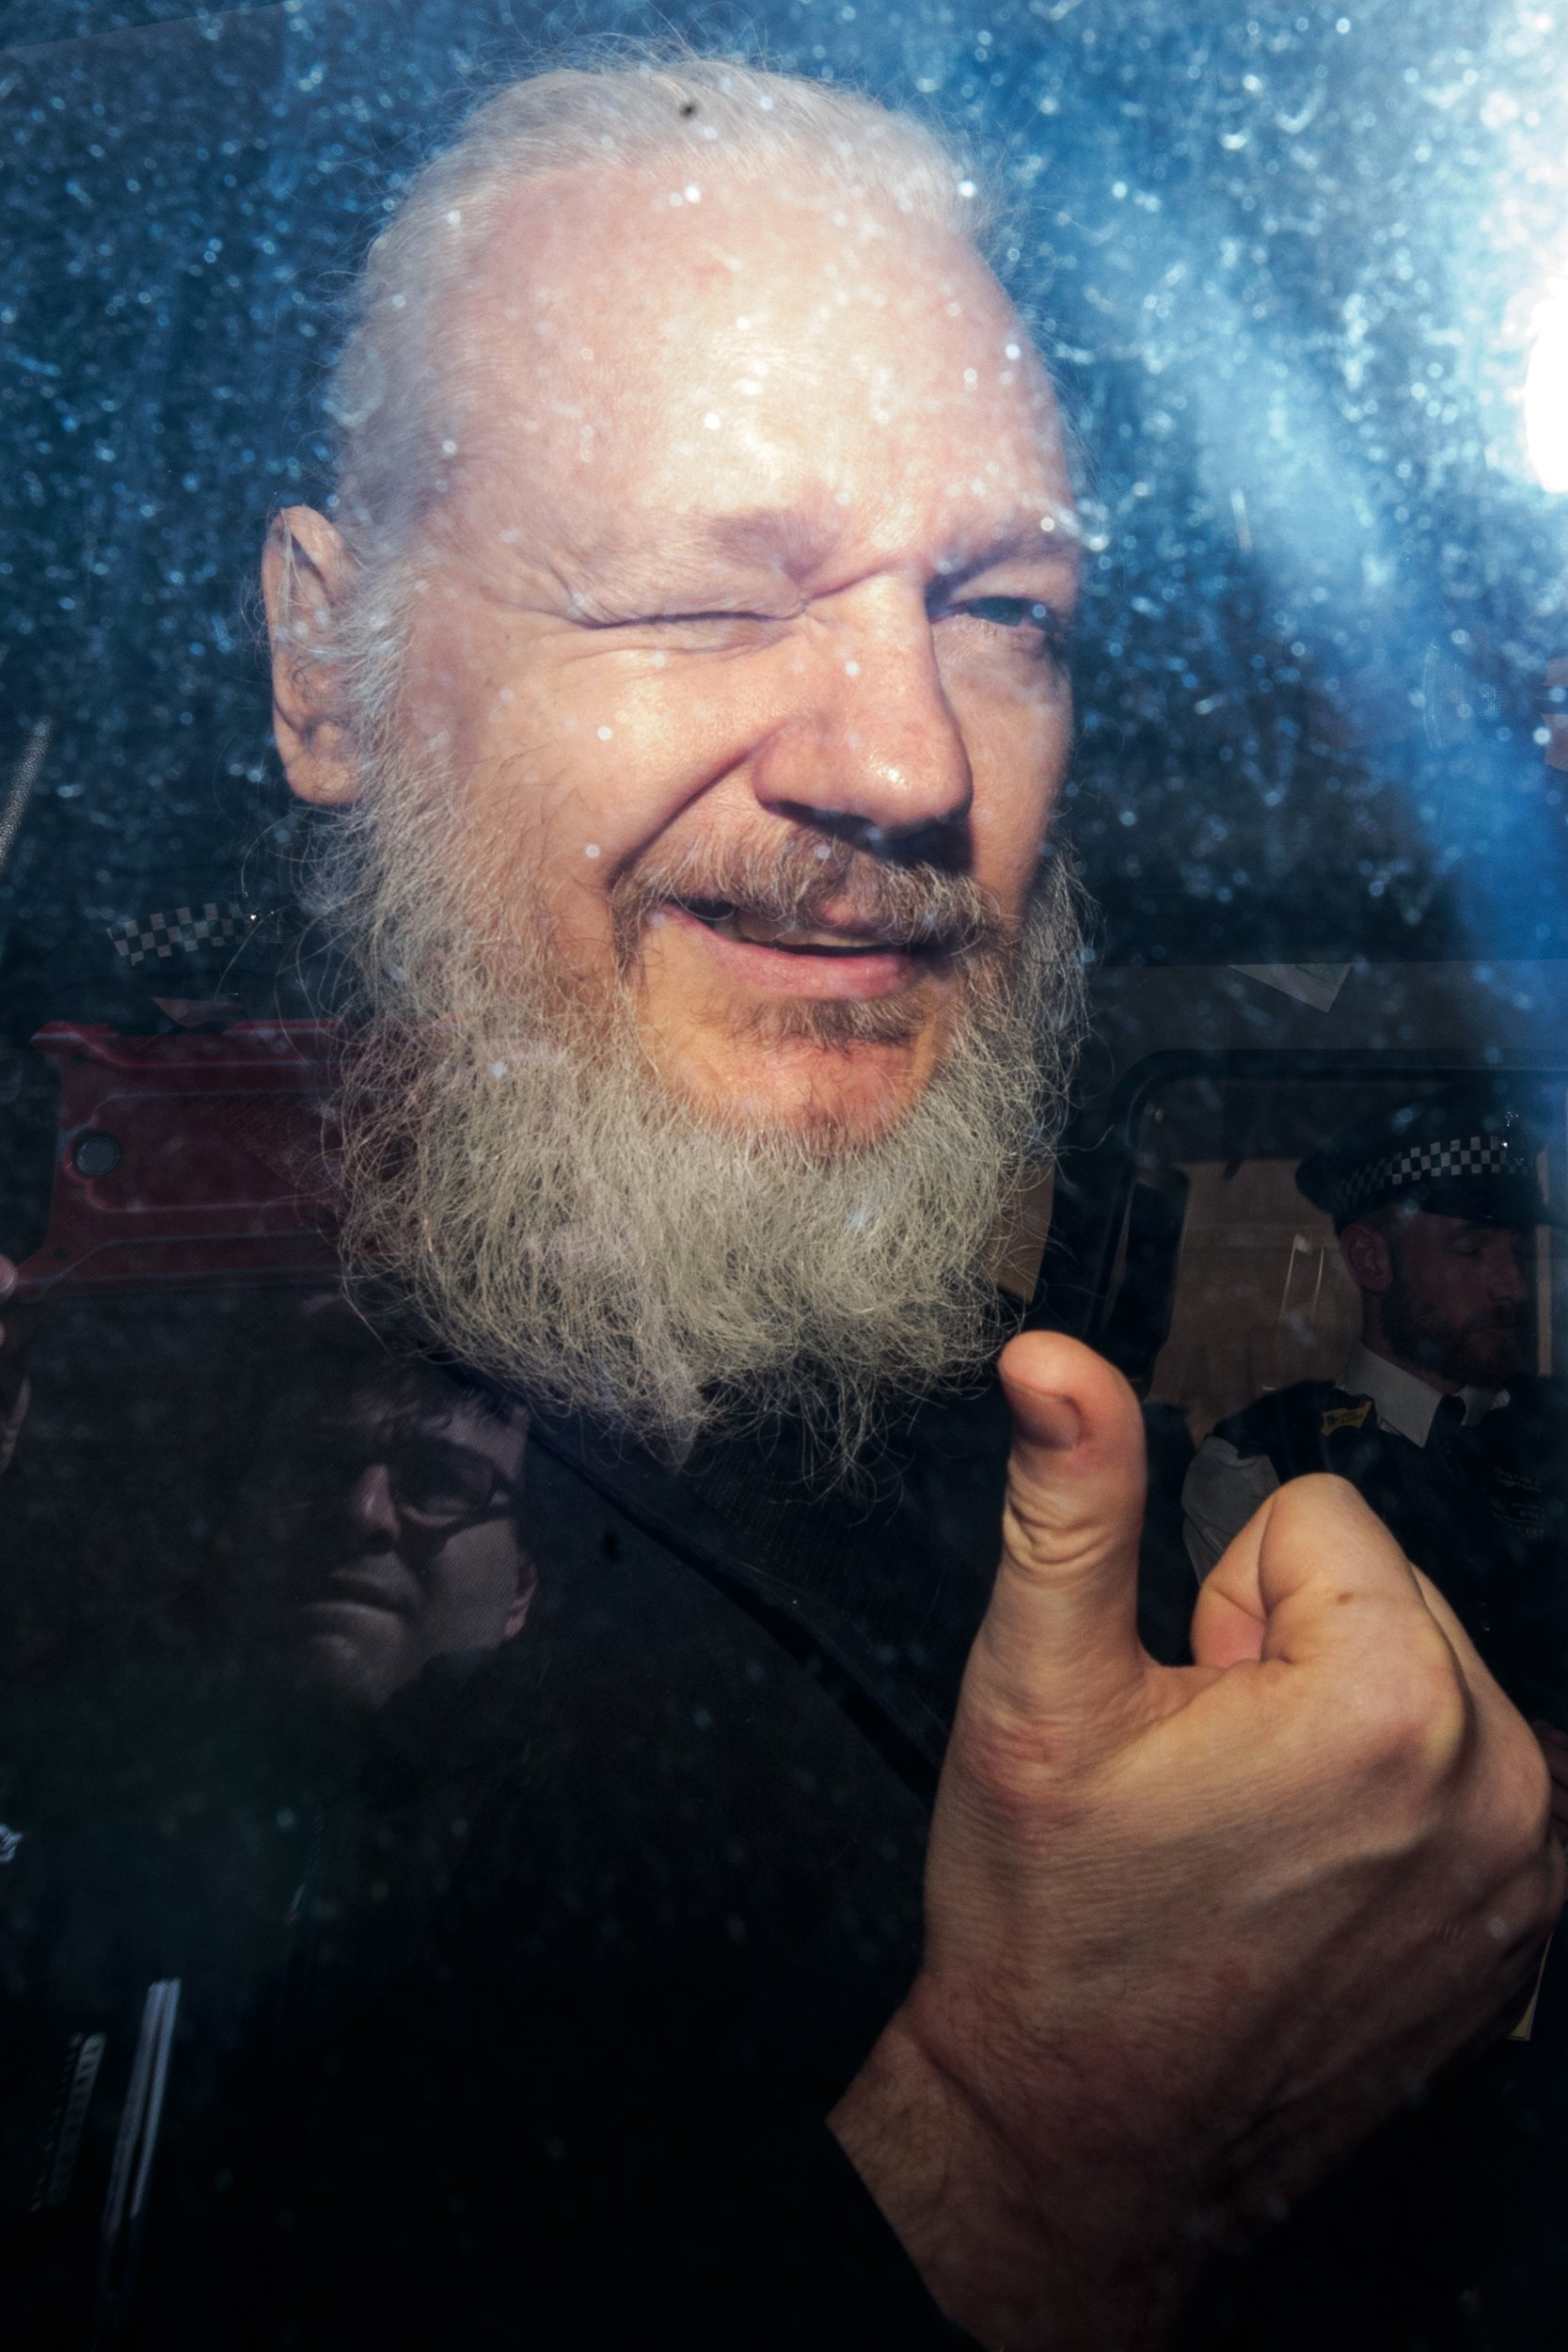 LONDON, ENGLAND - APRIL 11: Julian Assange gestures to the media from a police vehicle on his arrival at Westminster Magistrates court on April 11, 2019 in London, England. After weeks of speculation Wikileaks founder Julian Assange was arrested by Scotland Yard Police Officers inside the Ecuadorian Embassy in Central London this morning. Ecuador's President, Lenin Moreno, withdrew Assange's Asylum after seven years citing repeated violations to international conventions. (Photo by Jack Taylor/Getty Images) ***BESTPIX***